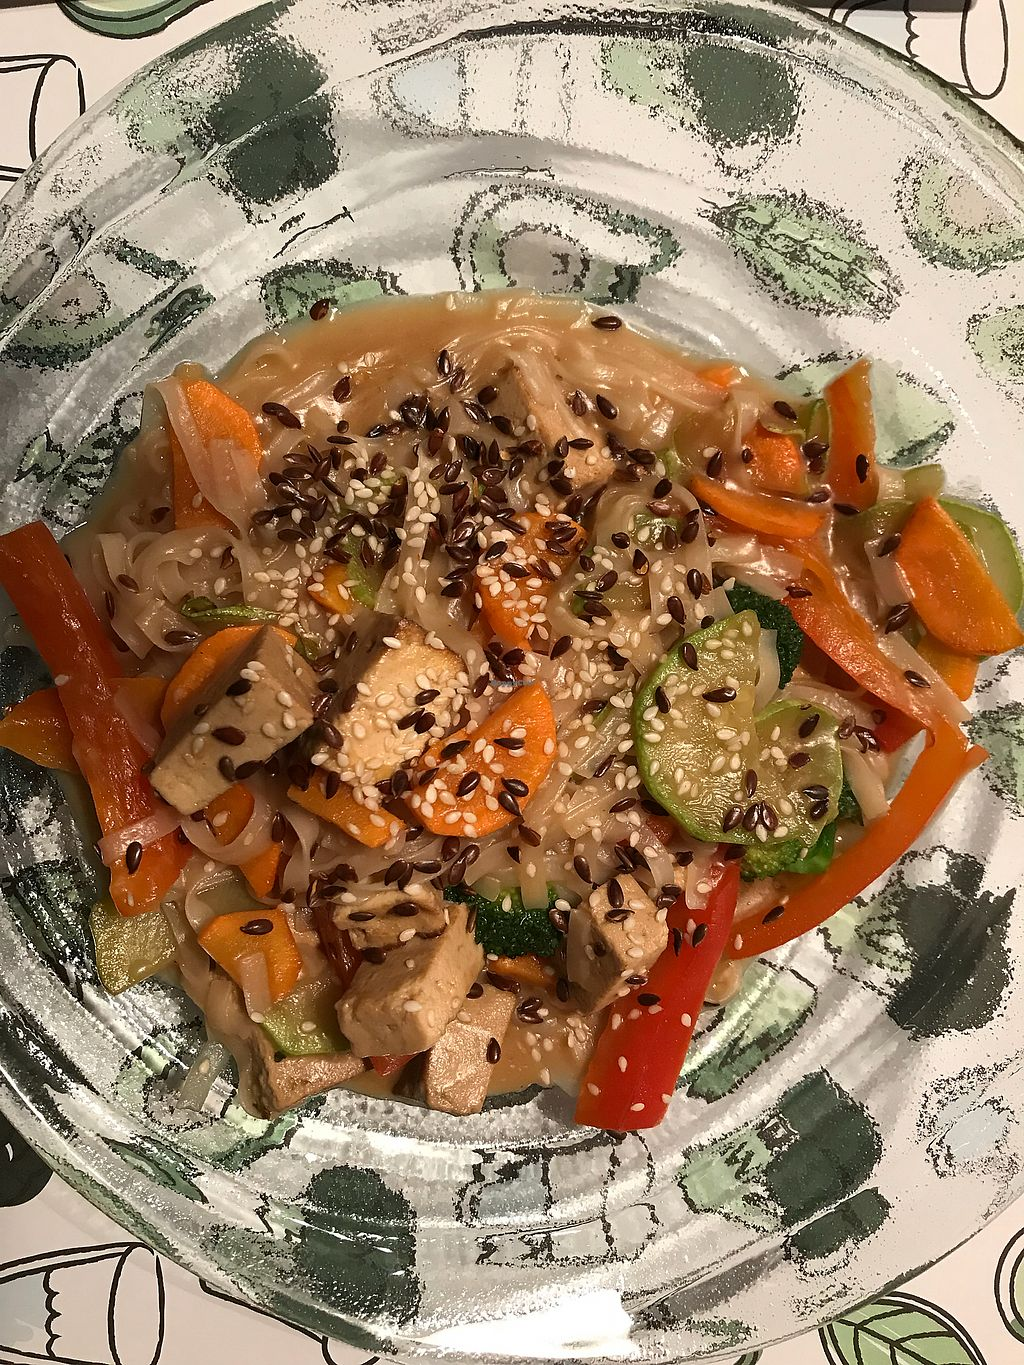 """Photo of True  by <a href=""""/members/profile/IrynaPietrova"""">IrynaPietrova</a> <br/>Rice noodles with vegetables. One of my most favorite dishes here <br/> January 23, 2018  - <a href='/contact/abuse/image/74550/350135'>Report</a>"""